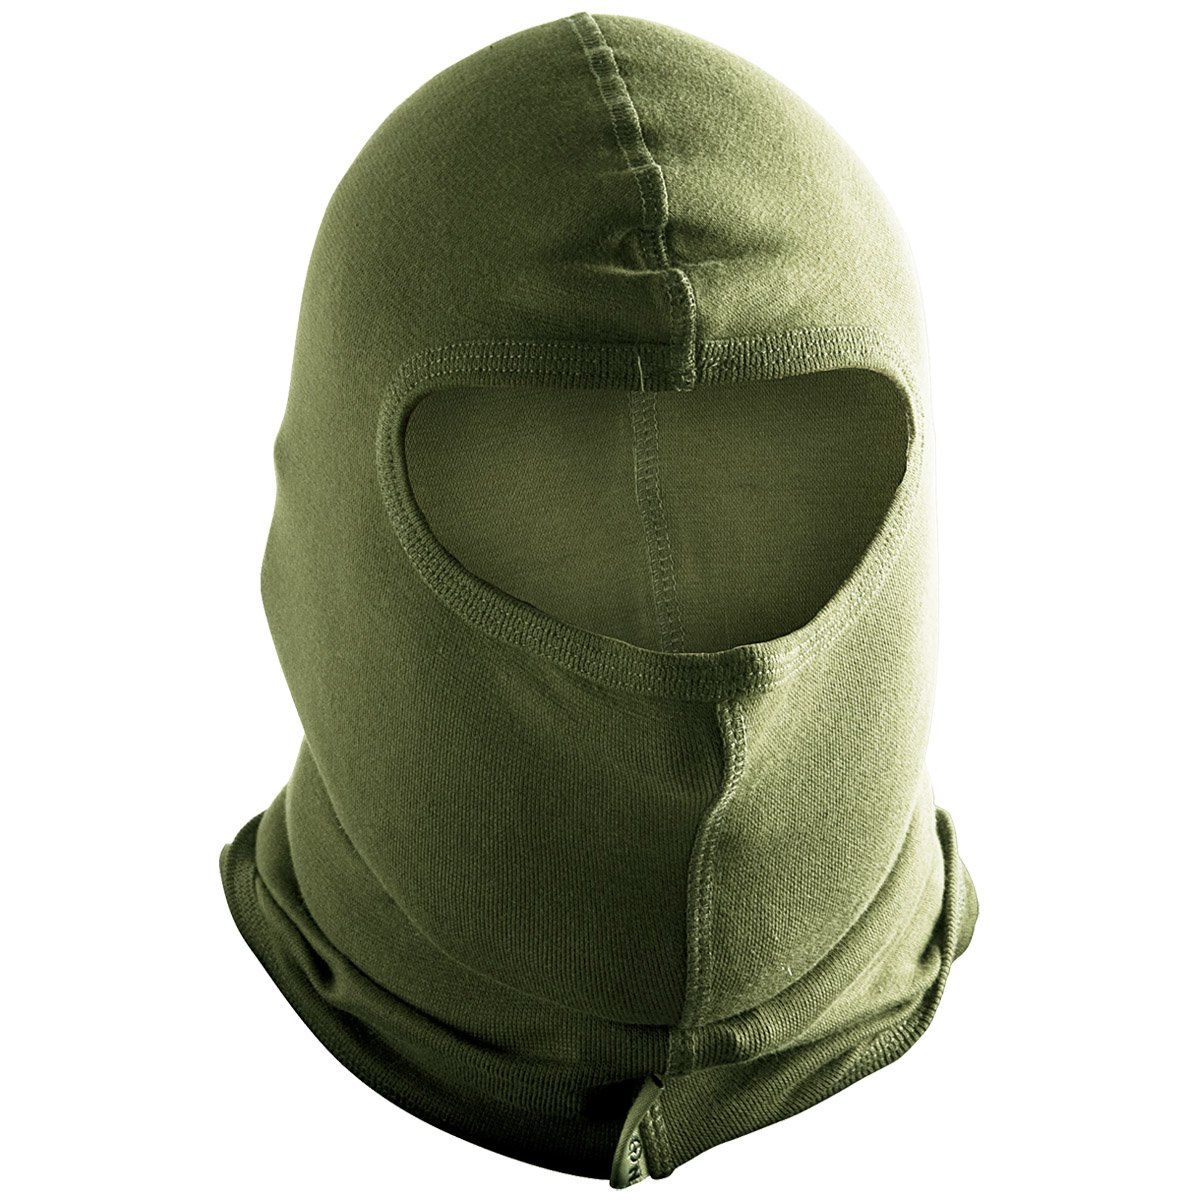 Helikon Tactical Combat 1 Hole Balaclava Cotton Mask Airsoft Paintball Olive